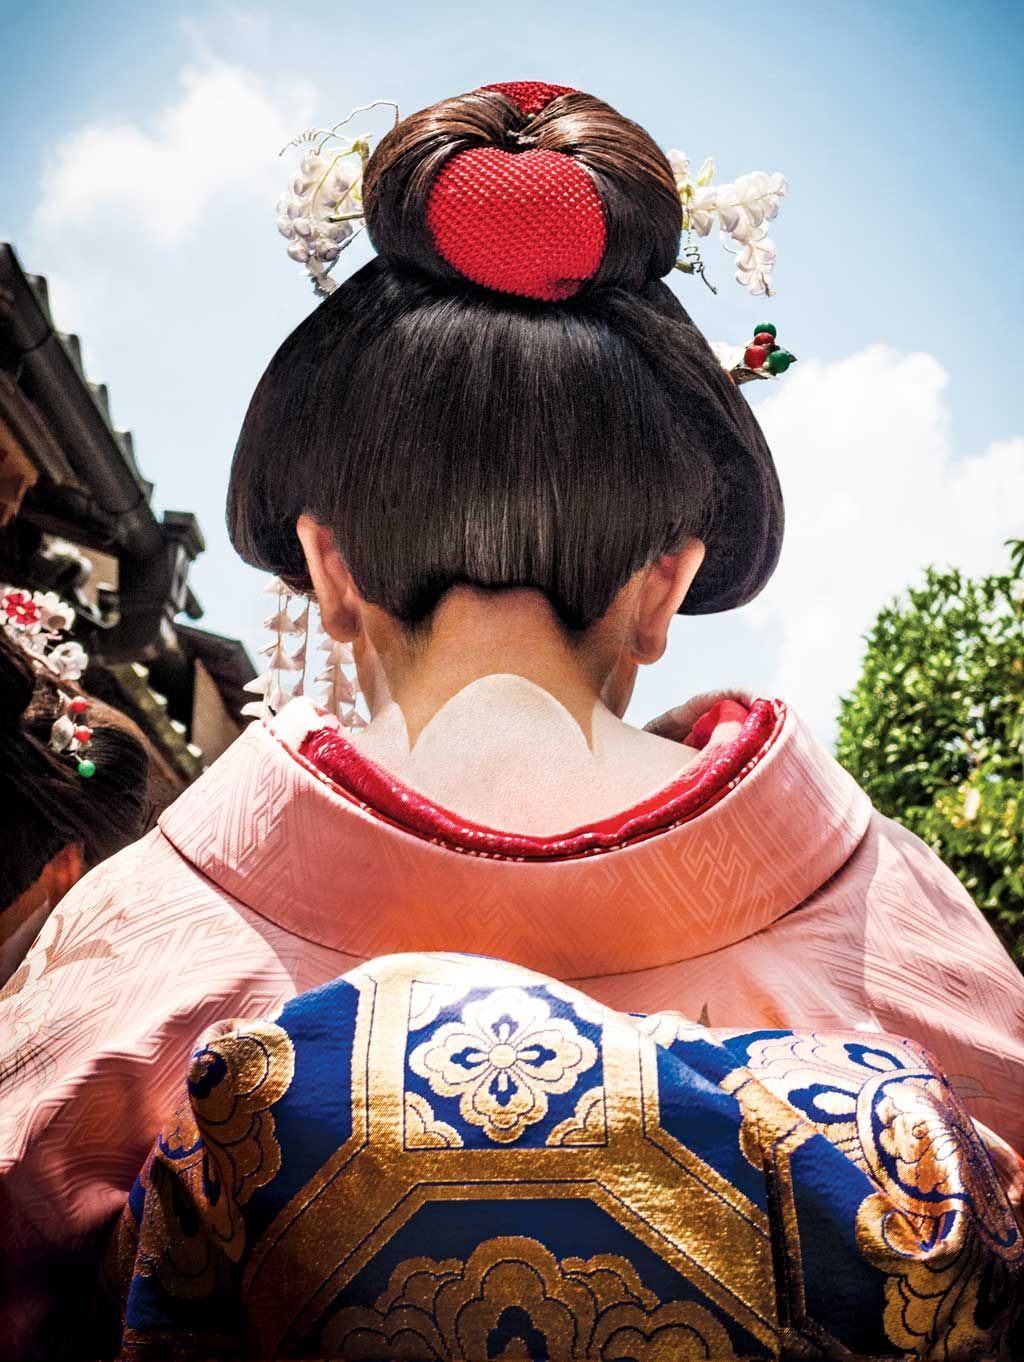 A geisha in Kyoto Japan, Asia, Most beautiful places